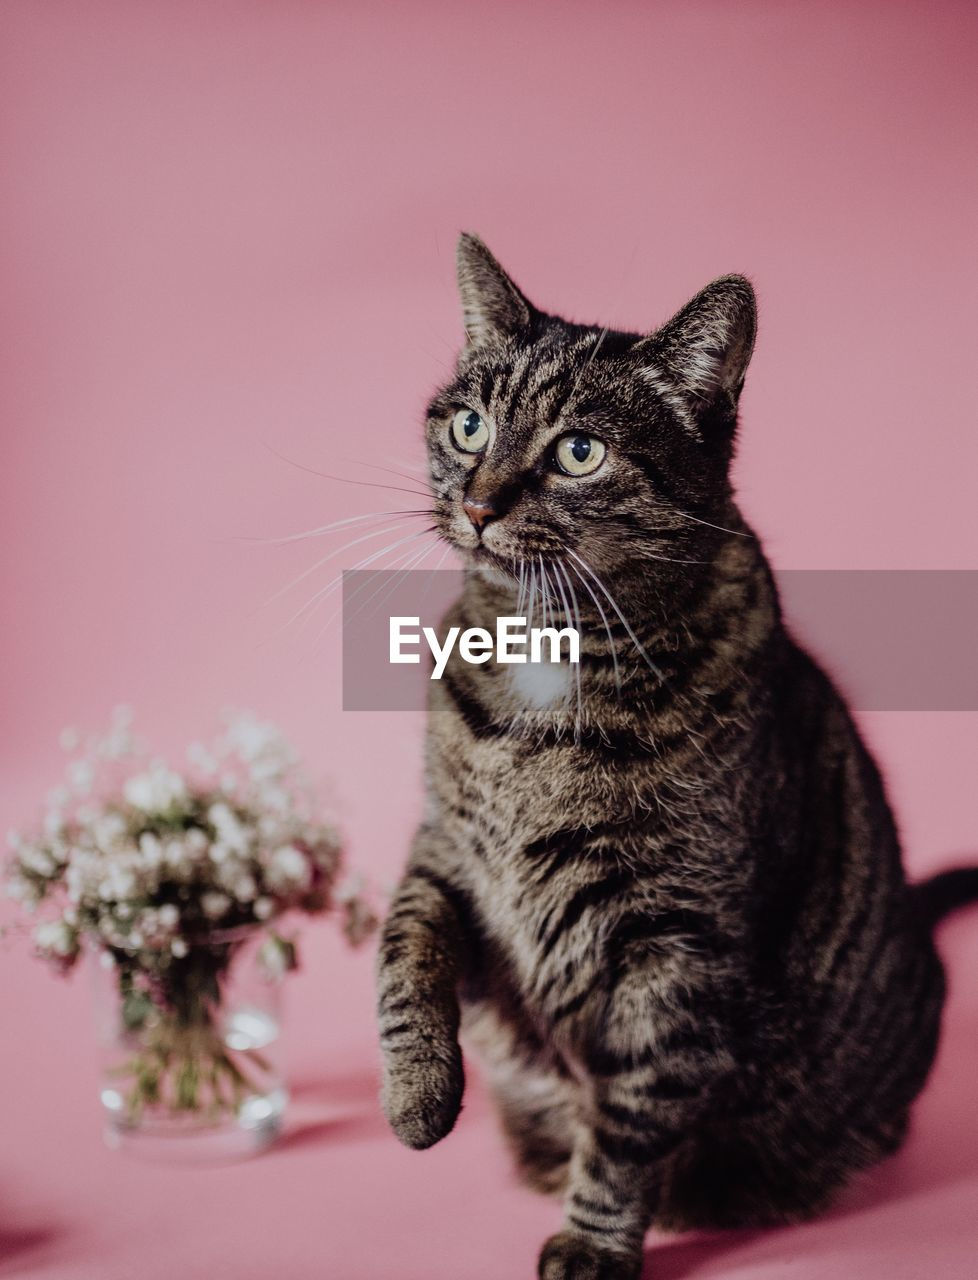 Close-up of a cat in front of clean background